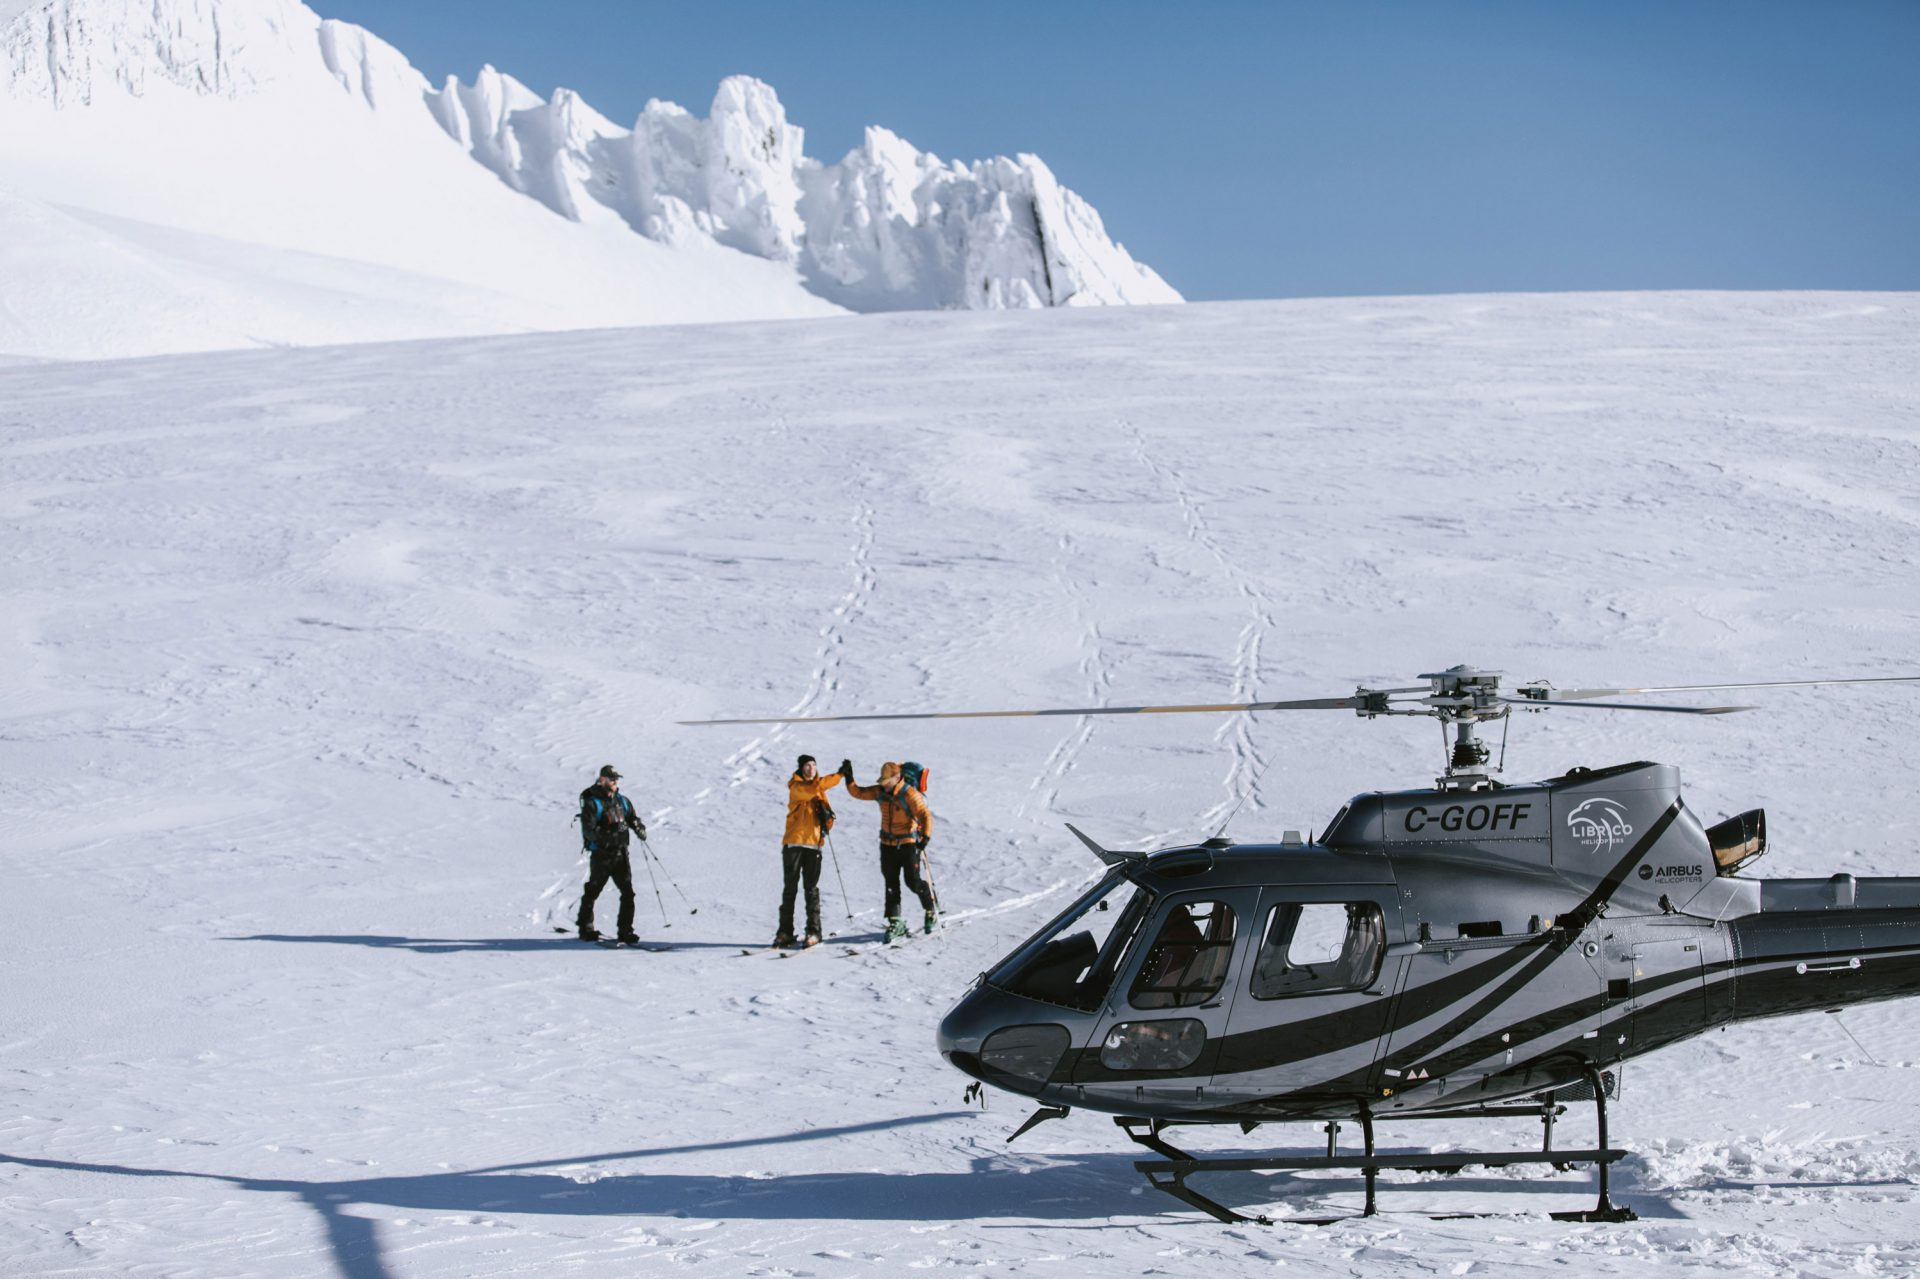 The Librico Helicopters with three snowshoeing adventurers